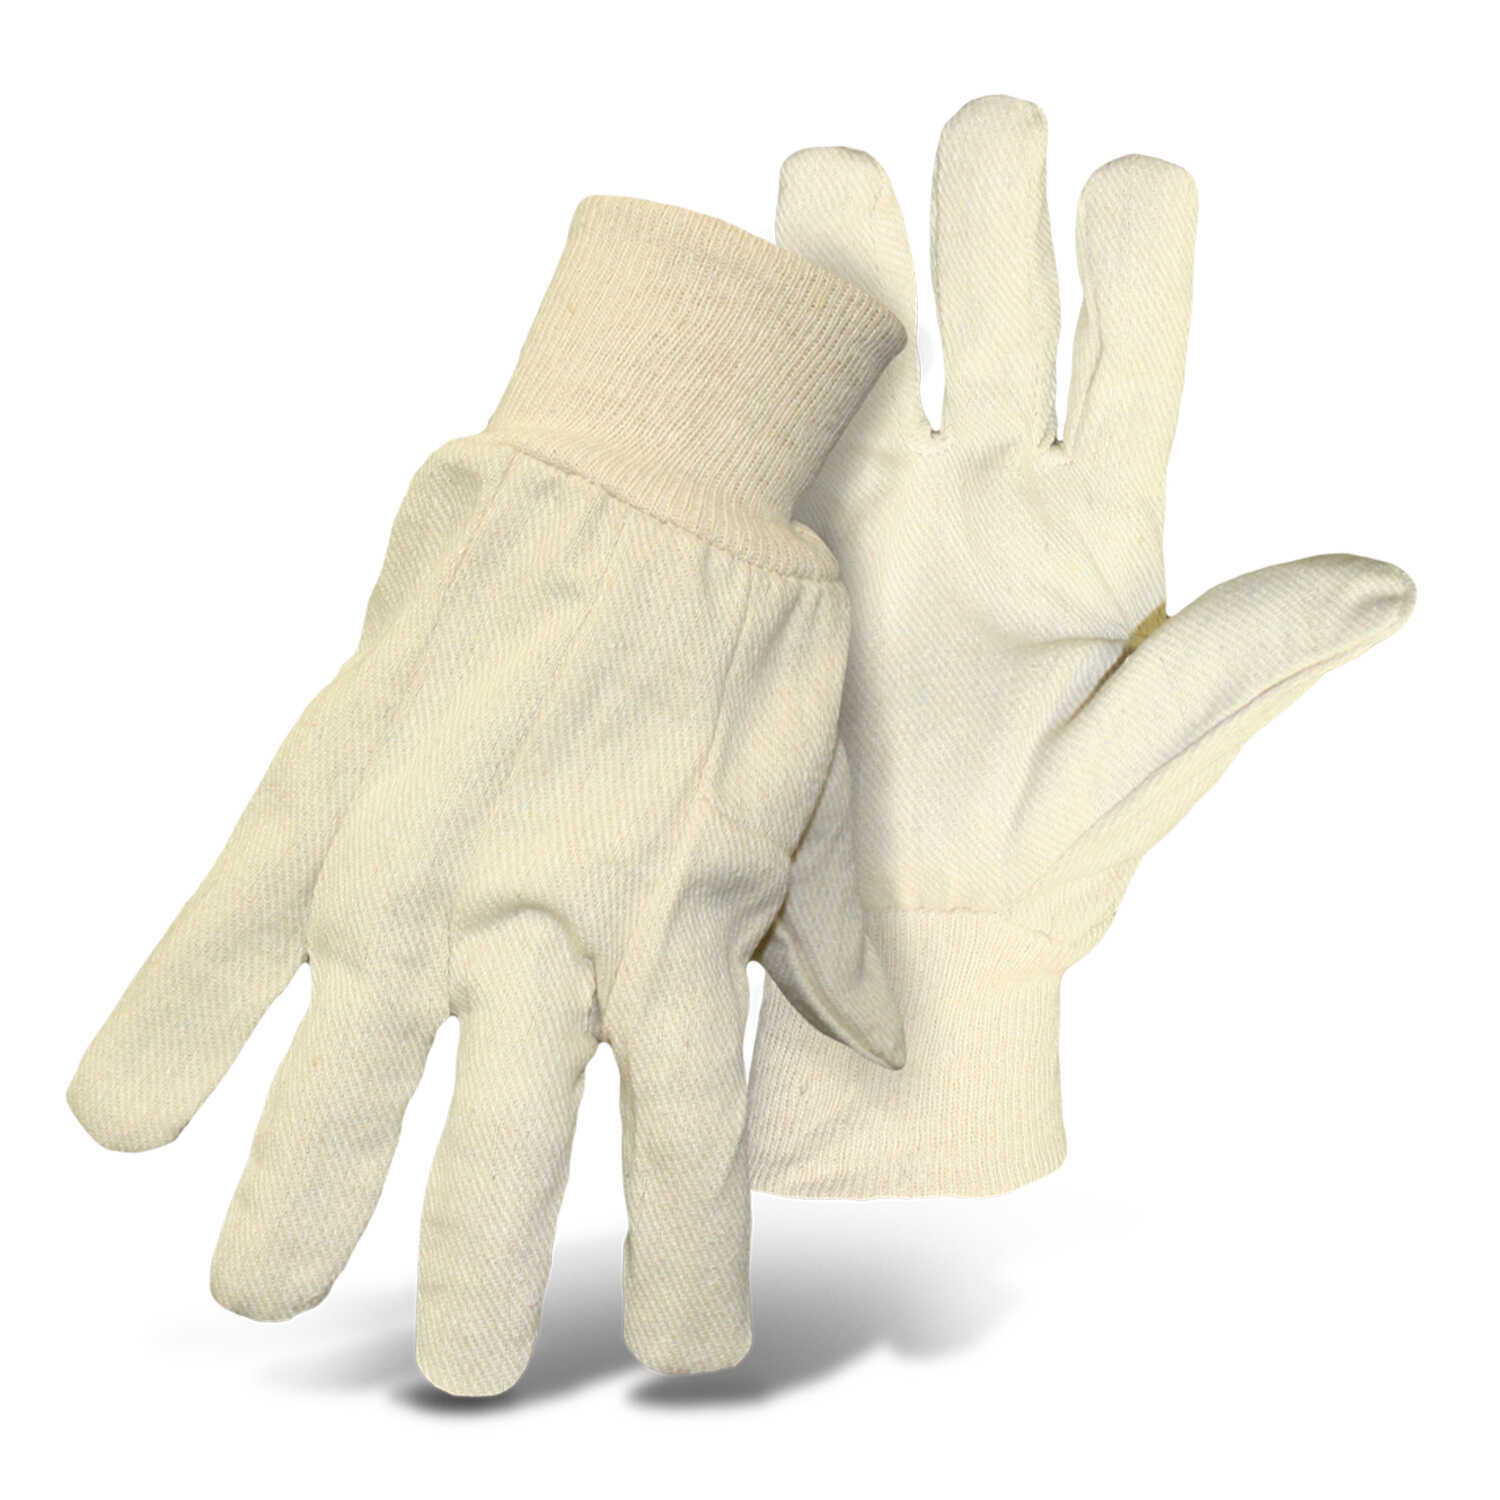 Boss  Men's  Indoor/Outdoor  Cotton  Clute Cut  Work Gloves  White  L